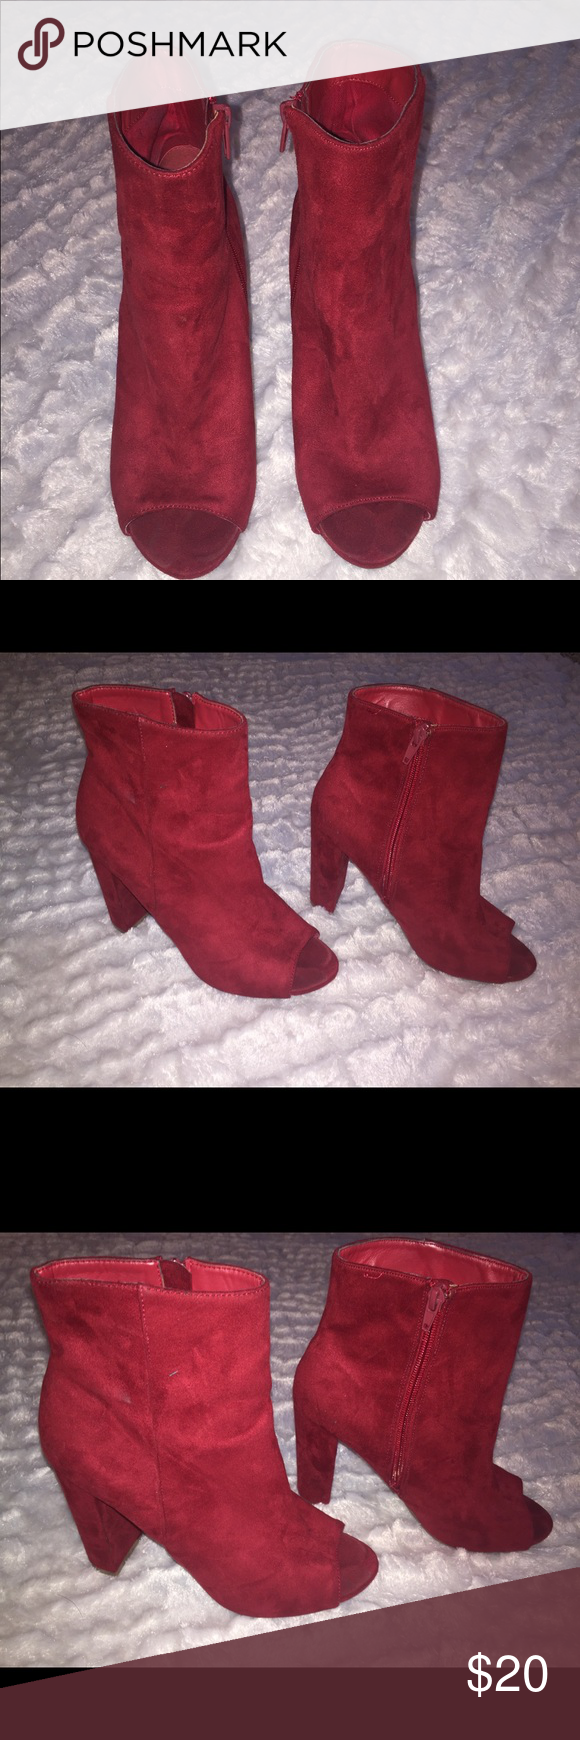 fb50711e6589 Peep toe ankle boots Red faux suede Perfect with jeans Worn once ...